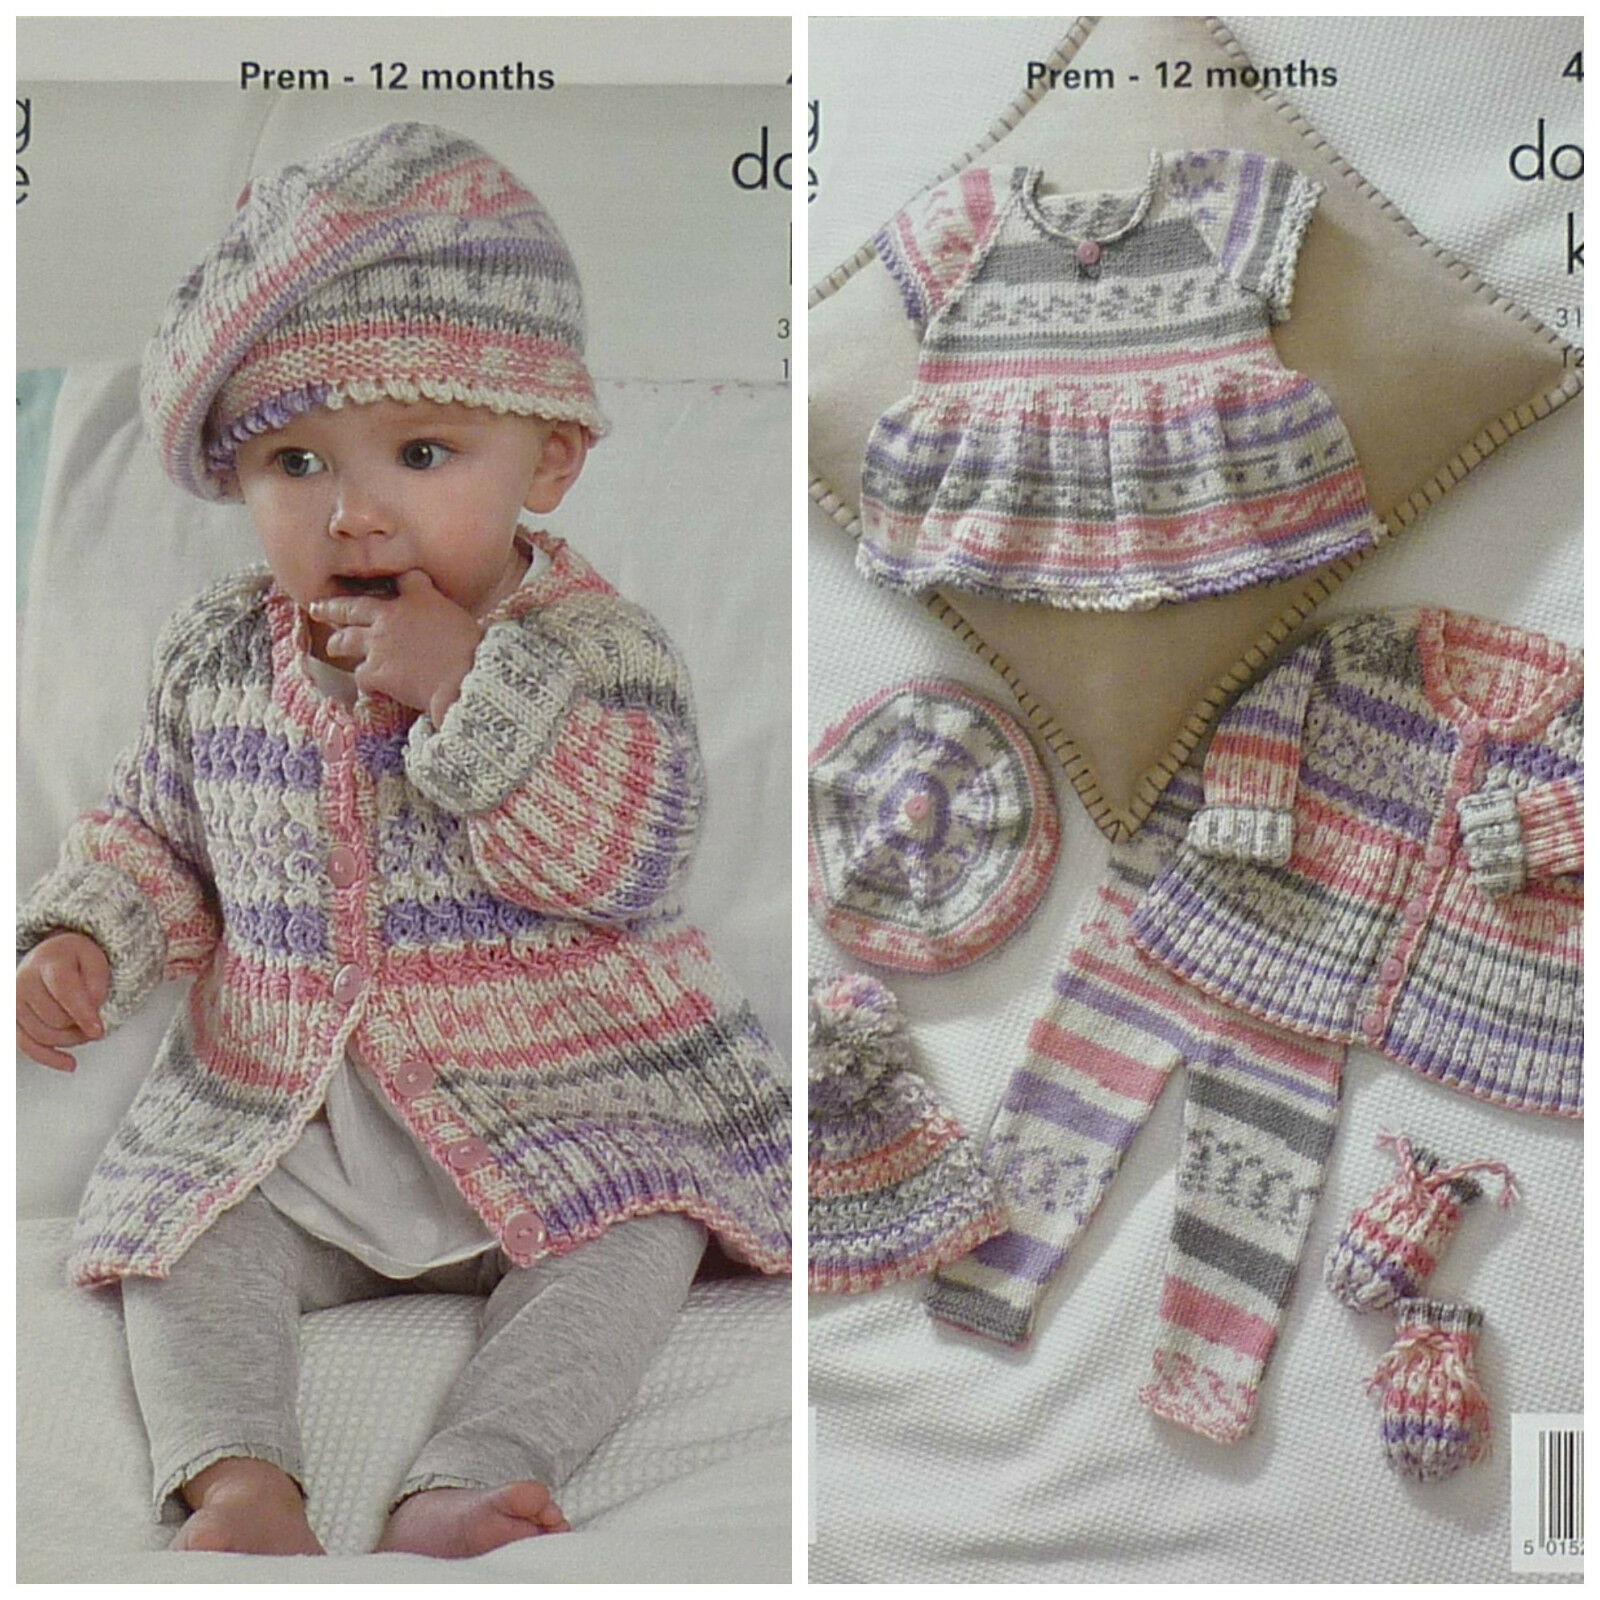 Knitted Beret Pattern Toddler : KNITTING PATTERN Baby Cable & Rib Coat Beret Hat Top & Mitts DK King ...